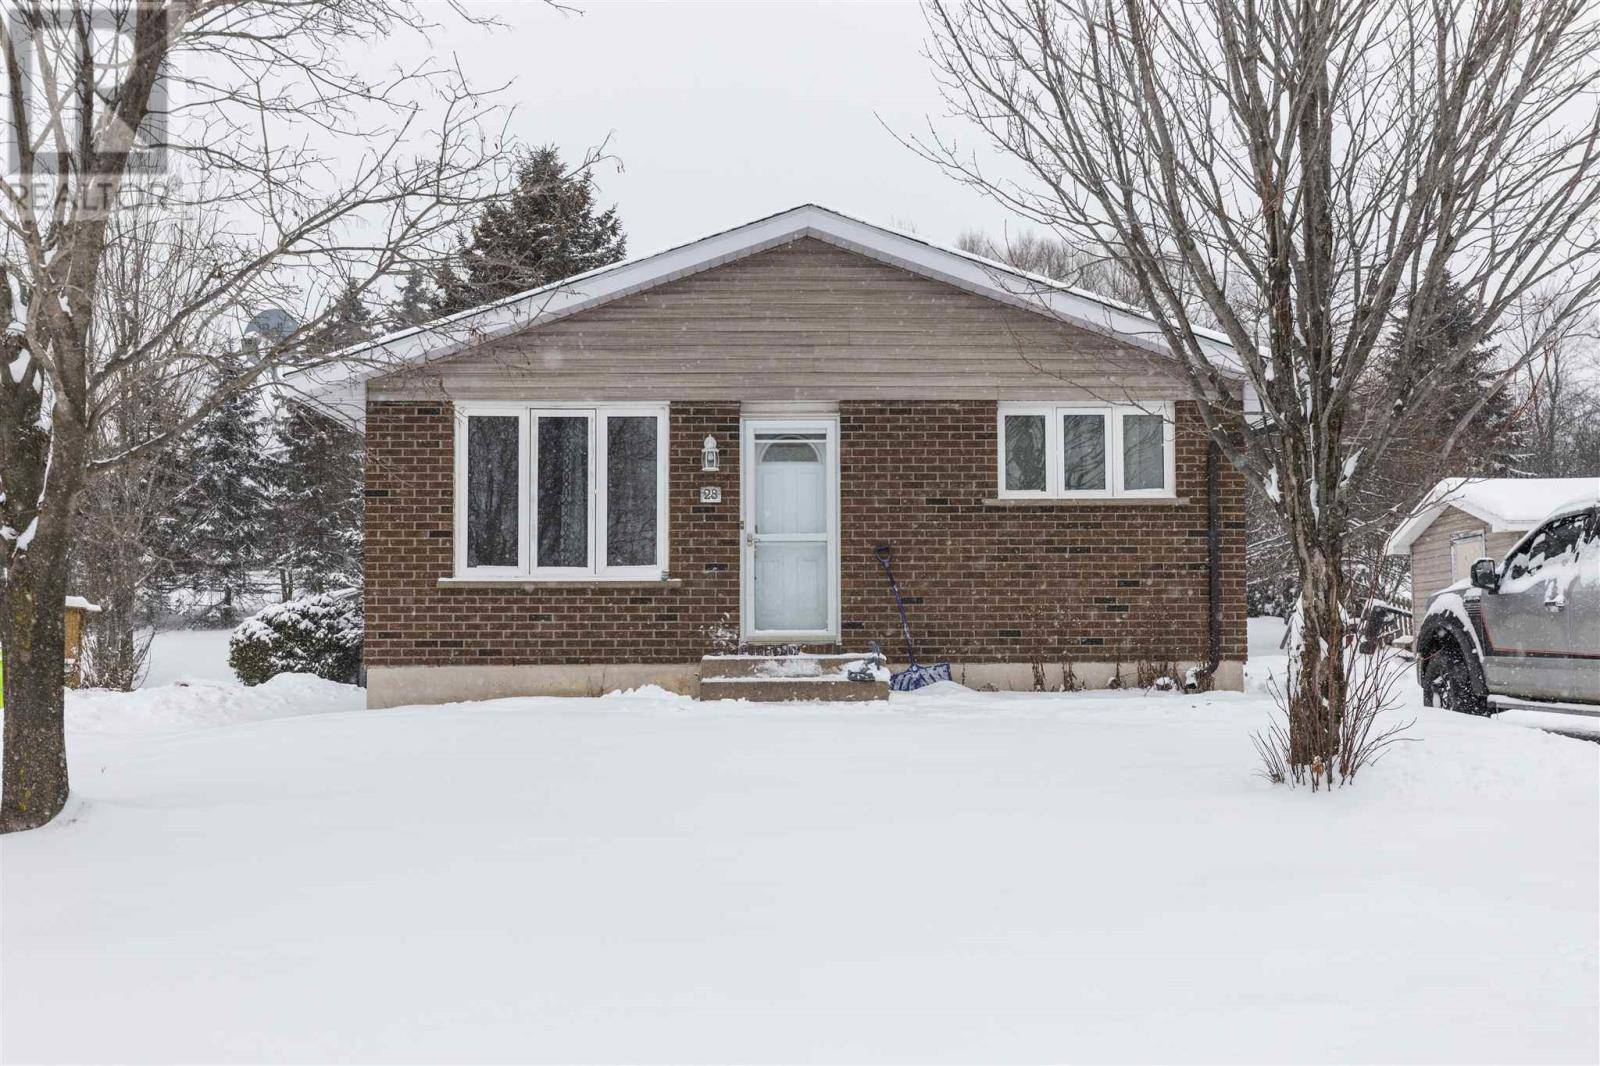 House for sale at 28 Hillside Dr Sault Ste. Marie Ontario - MLS: SM127597